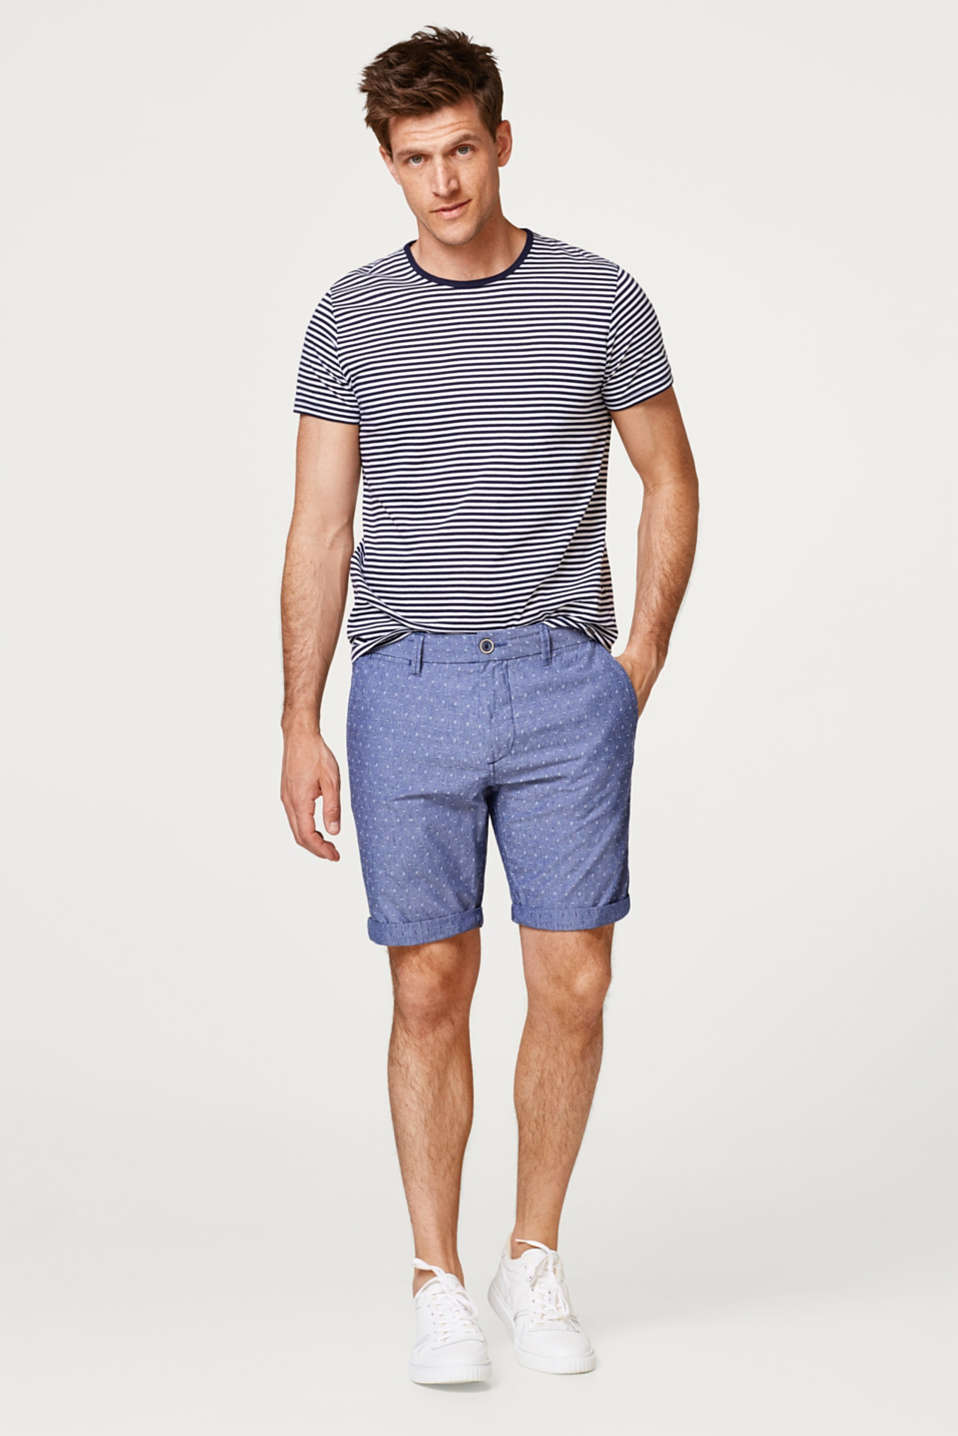 Chambray shorts with a textured pattern, made of cotton